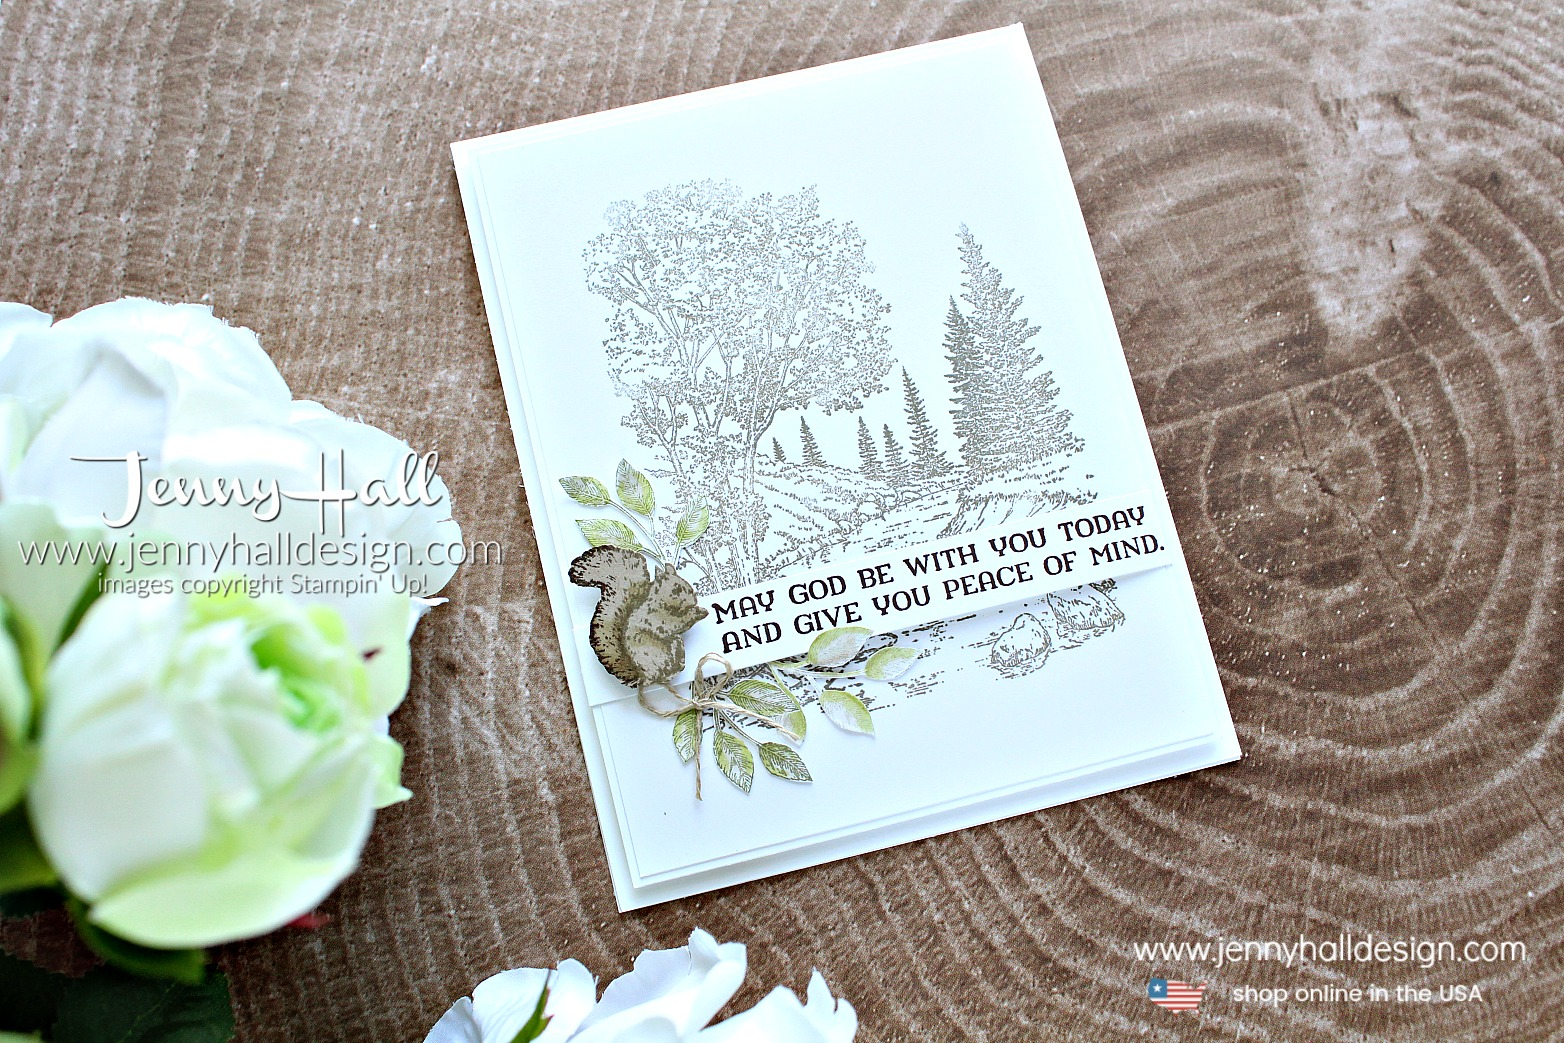 Peaceful Place support card created by Jenny Hall at www.jennyhalldesign.com for #cardmaking #cardmaker #stamping #stampinup #peacefulplace #squirrelstamp #supportgreetingcard #jennyhall #jennyhalldesign #jennystampsup #neutraltones #cardmakingtechniques #crafts #craftsforkids #diy #papercraft #lifestyle #papercraft #backgroundstamp